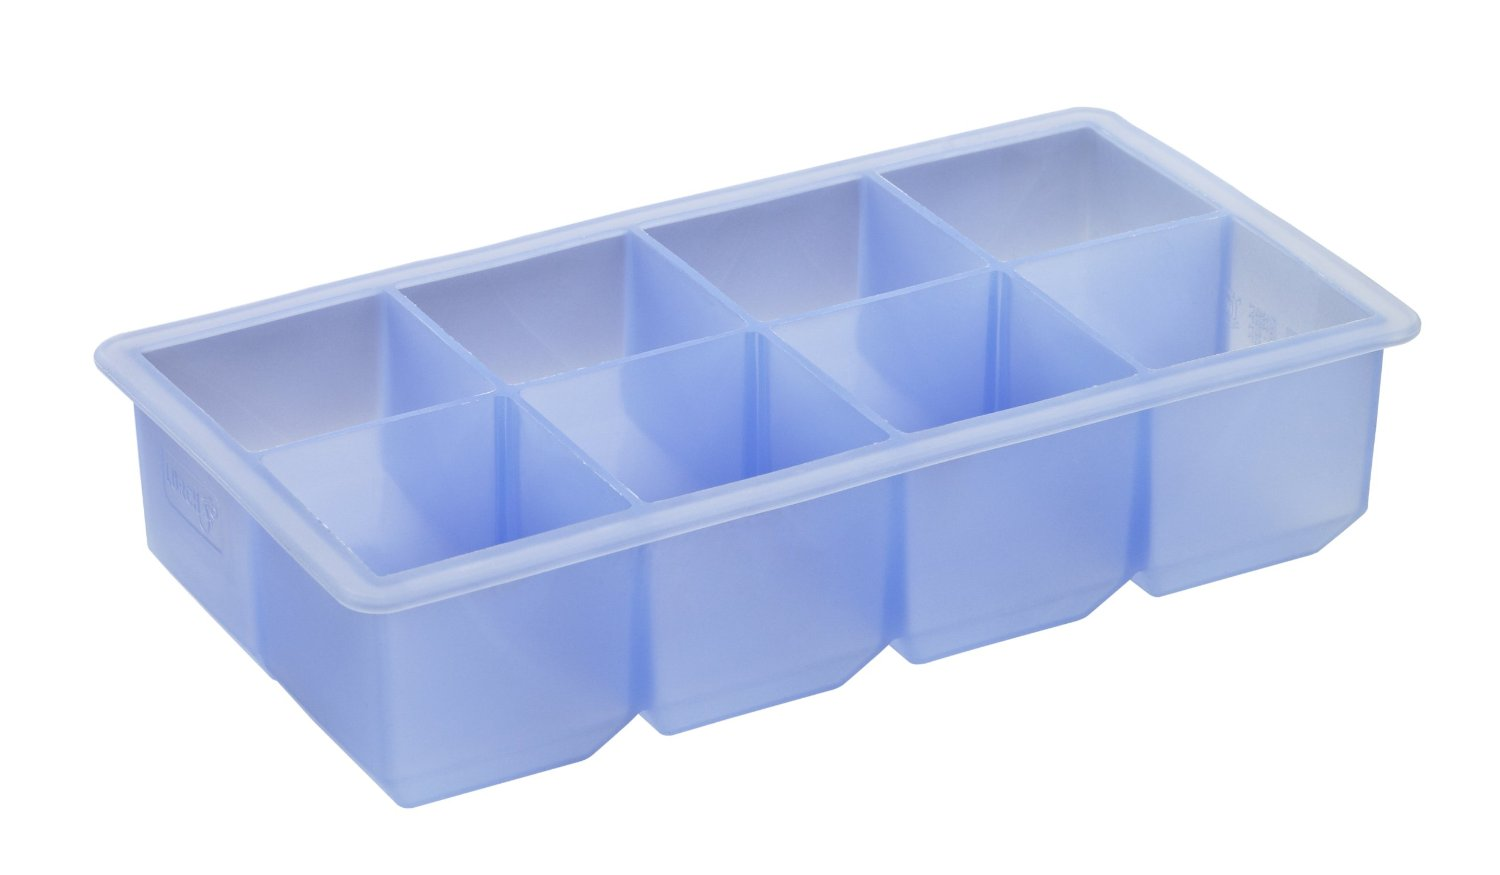 CUVETE GELO CUBO 5X5CM AZUL SILICONE